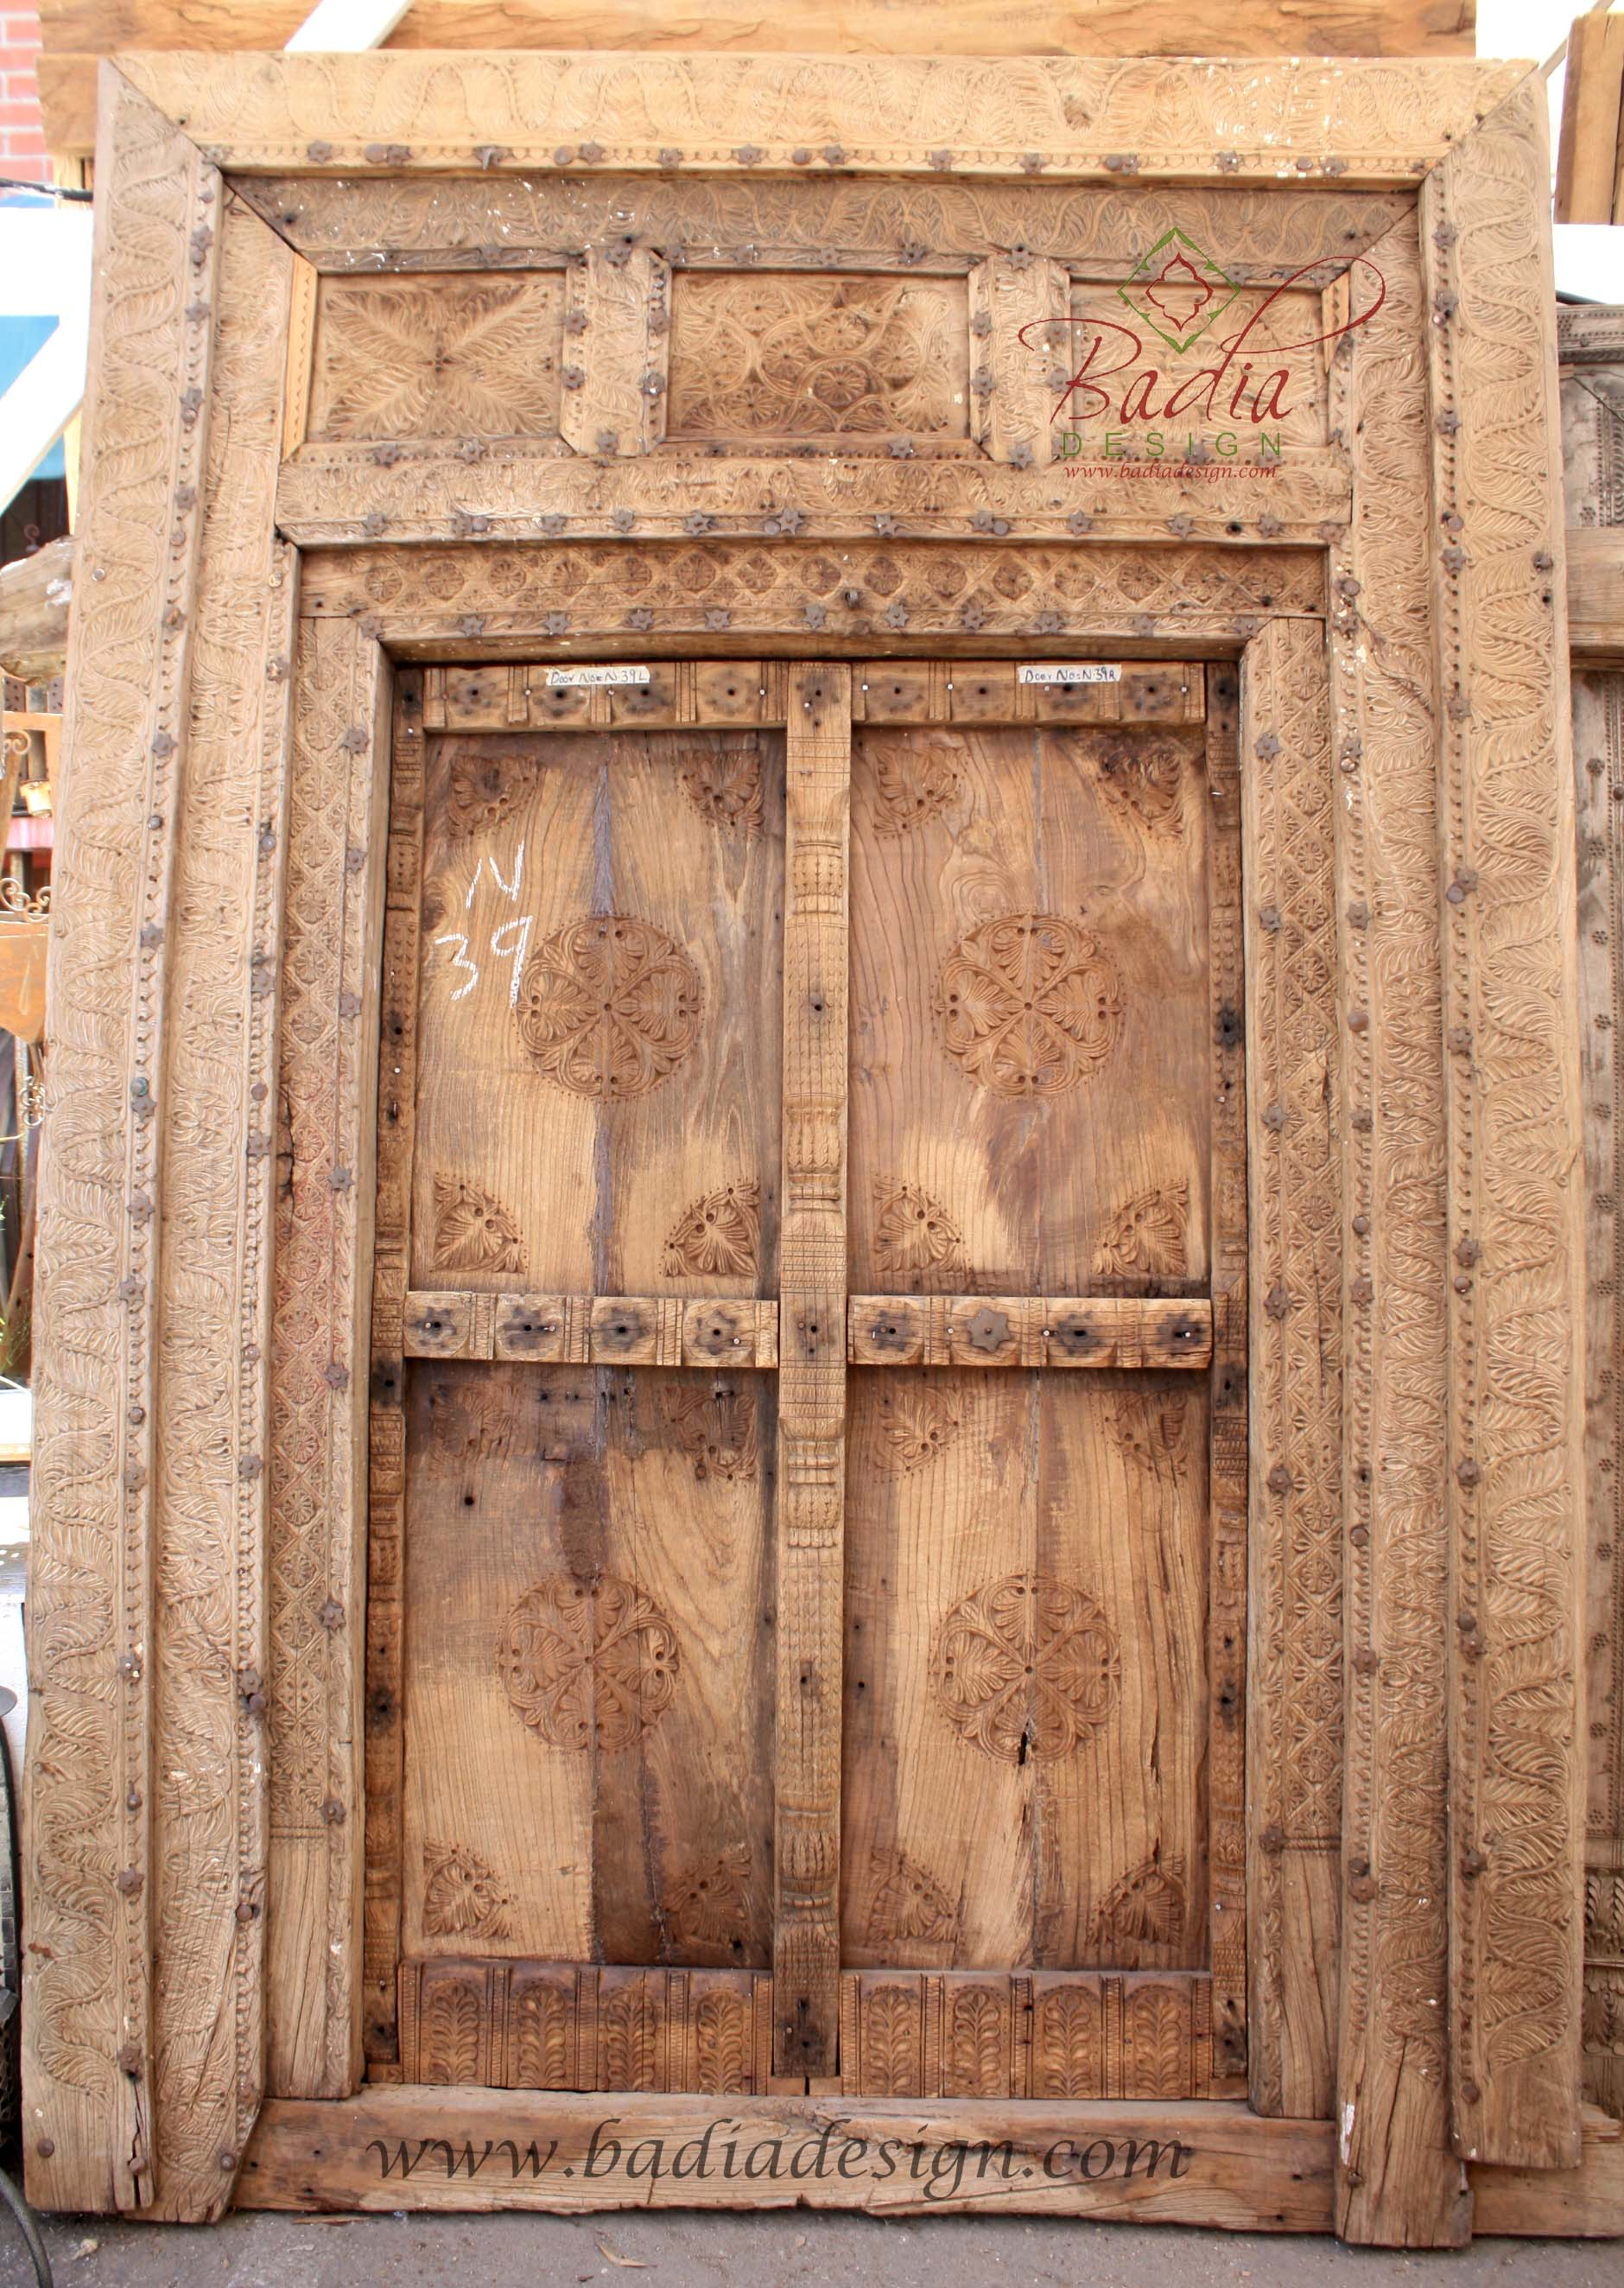 Large Vintage Wooden Door from Badia Design Inc.